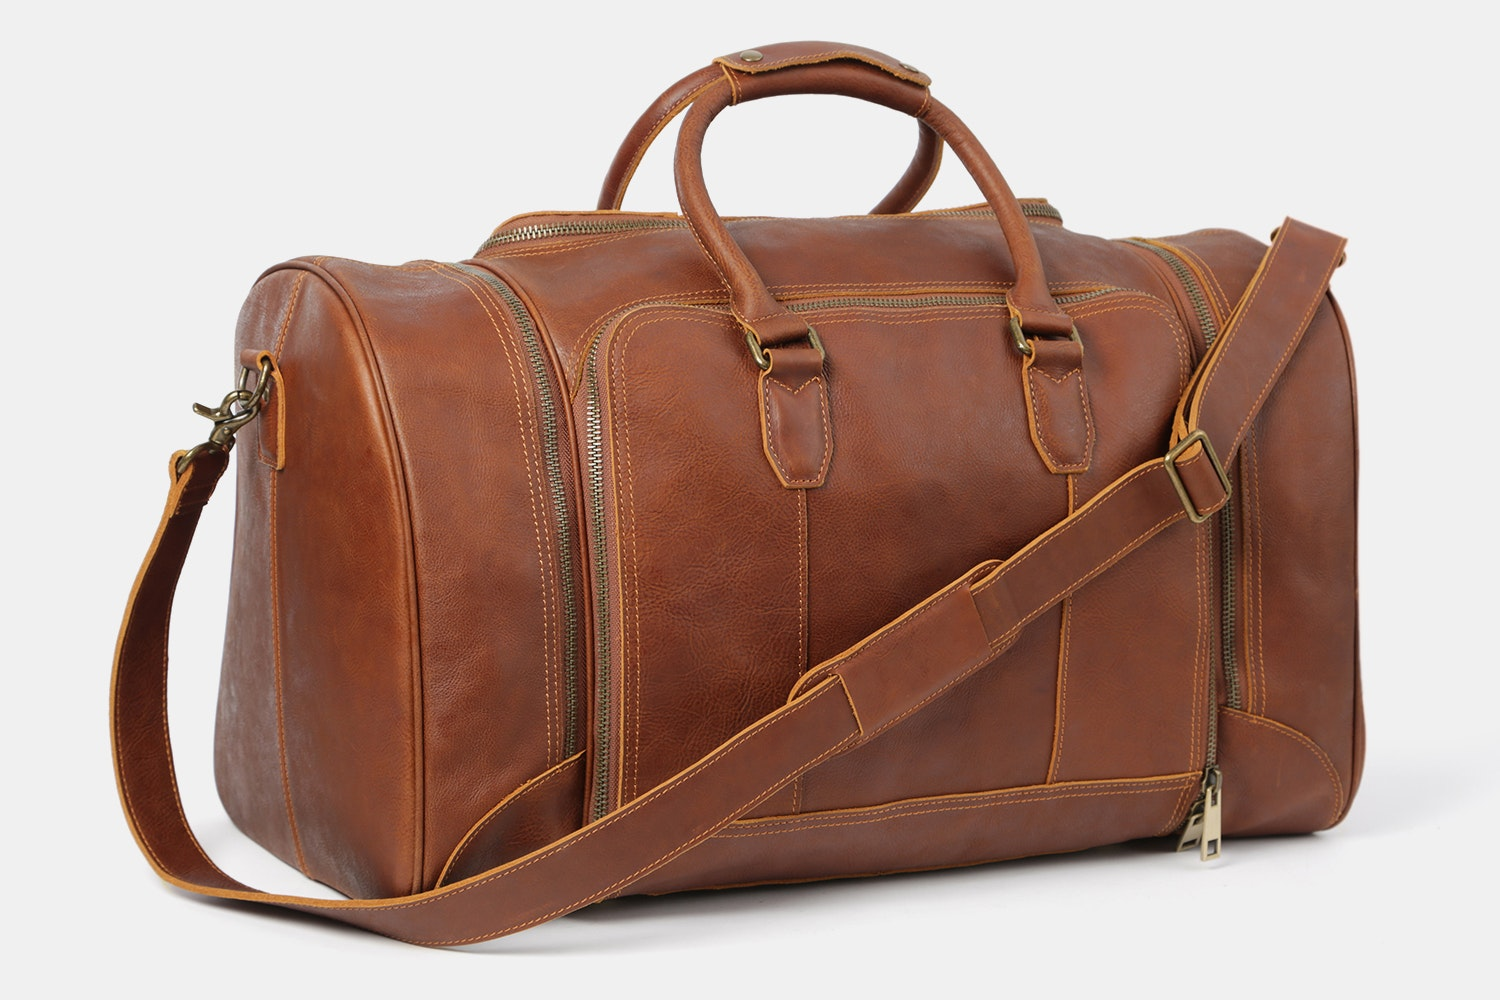 Brown Bag with Brass-colored Hardware